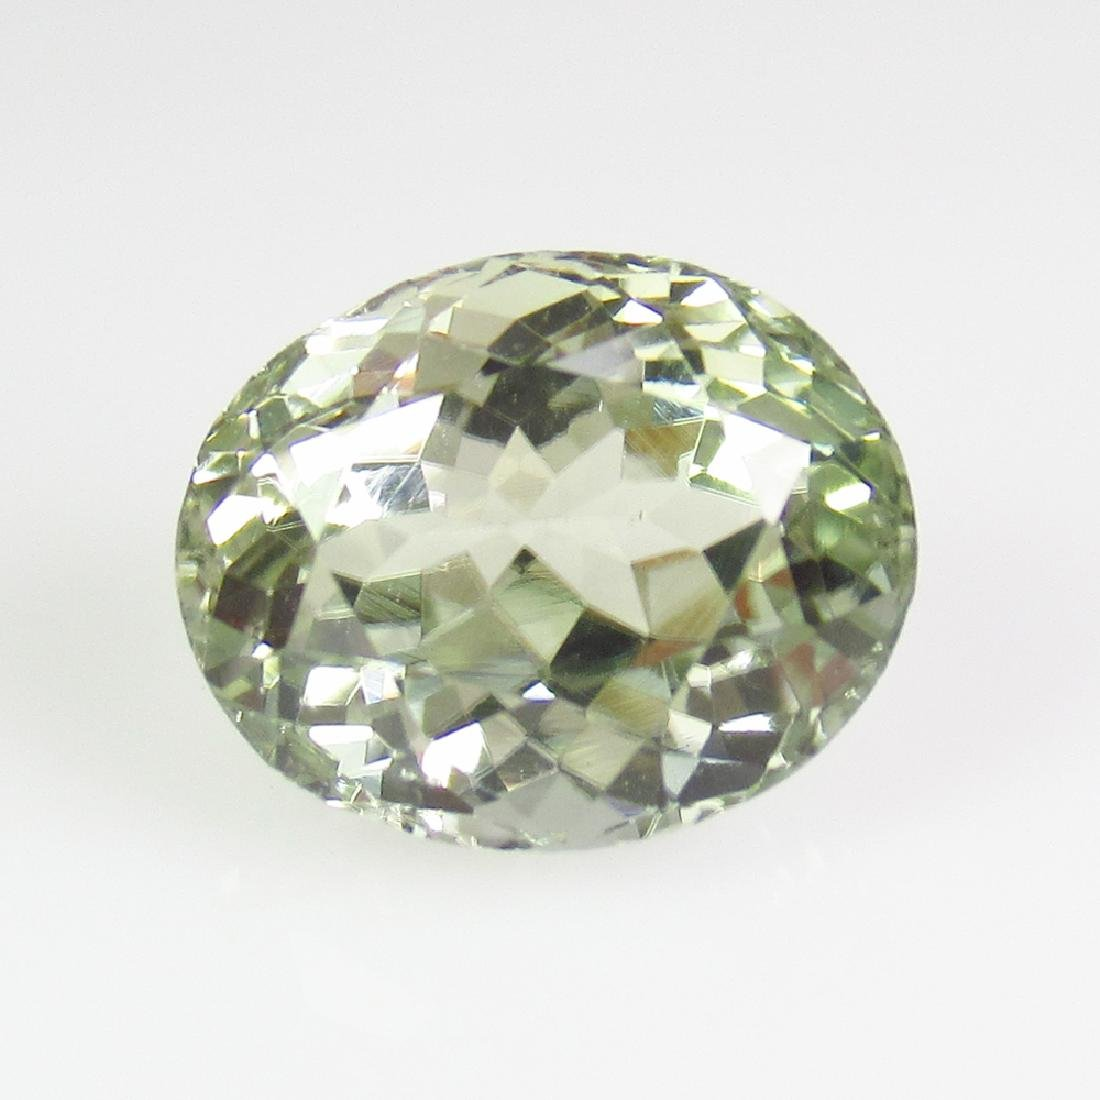 4.29 Ct Genuine Lime Green Sillimanite 11X9 mm Oval Cut